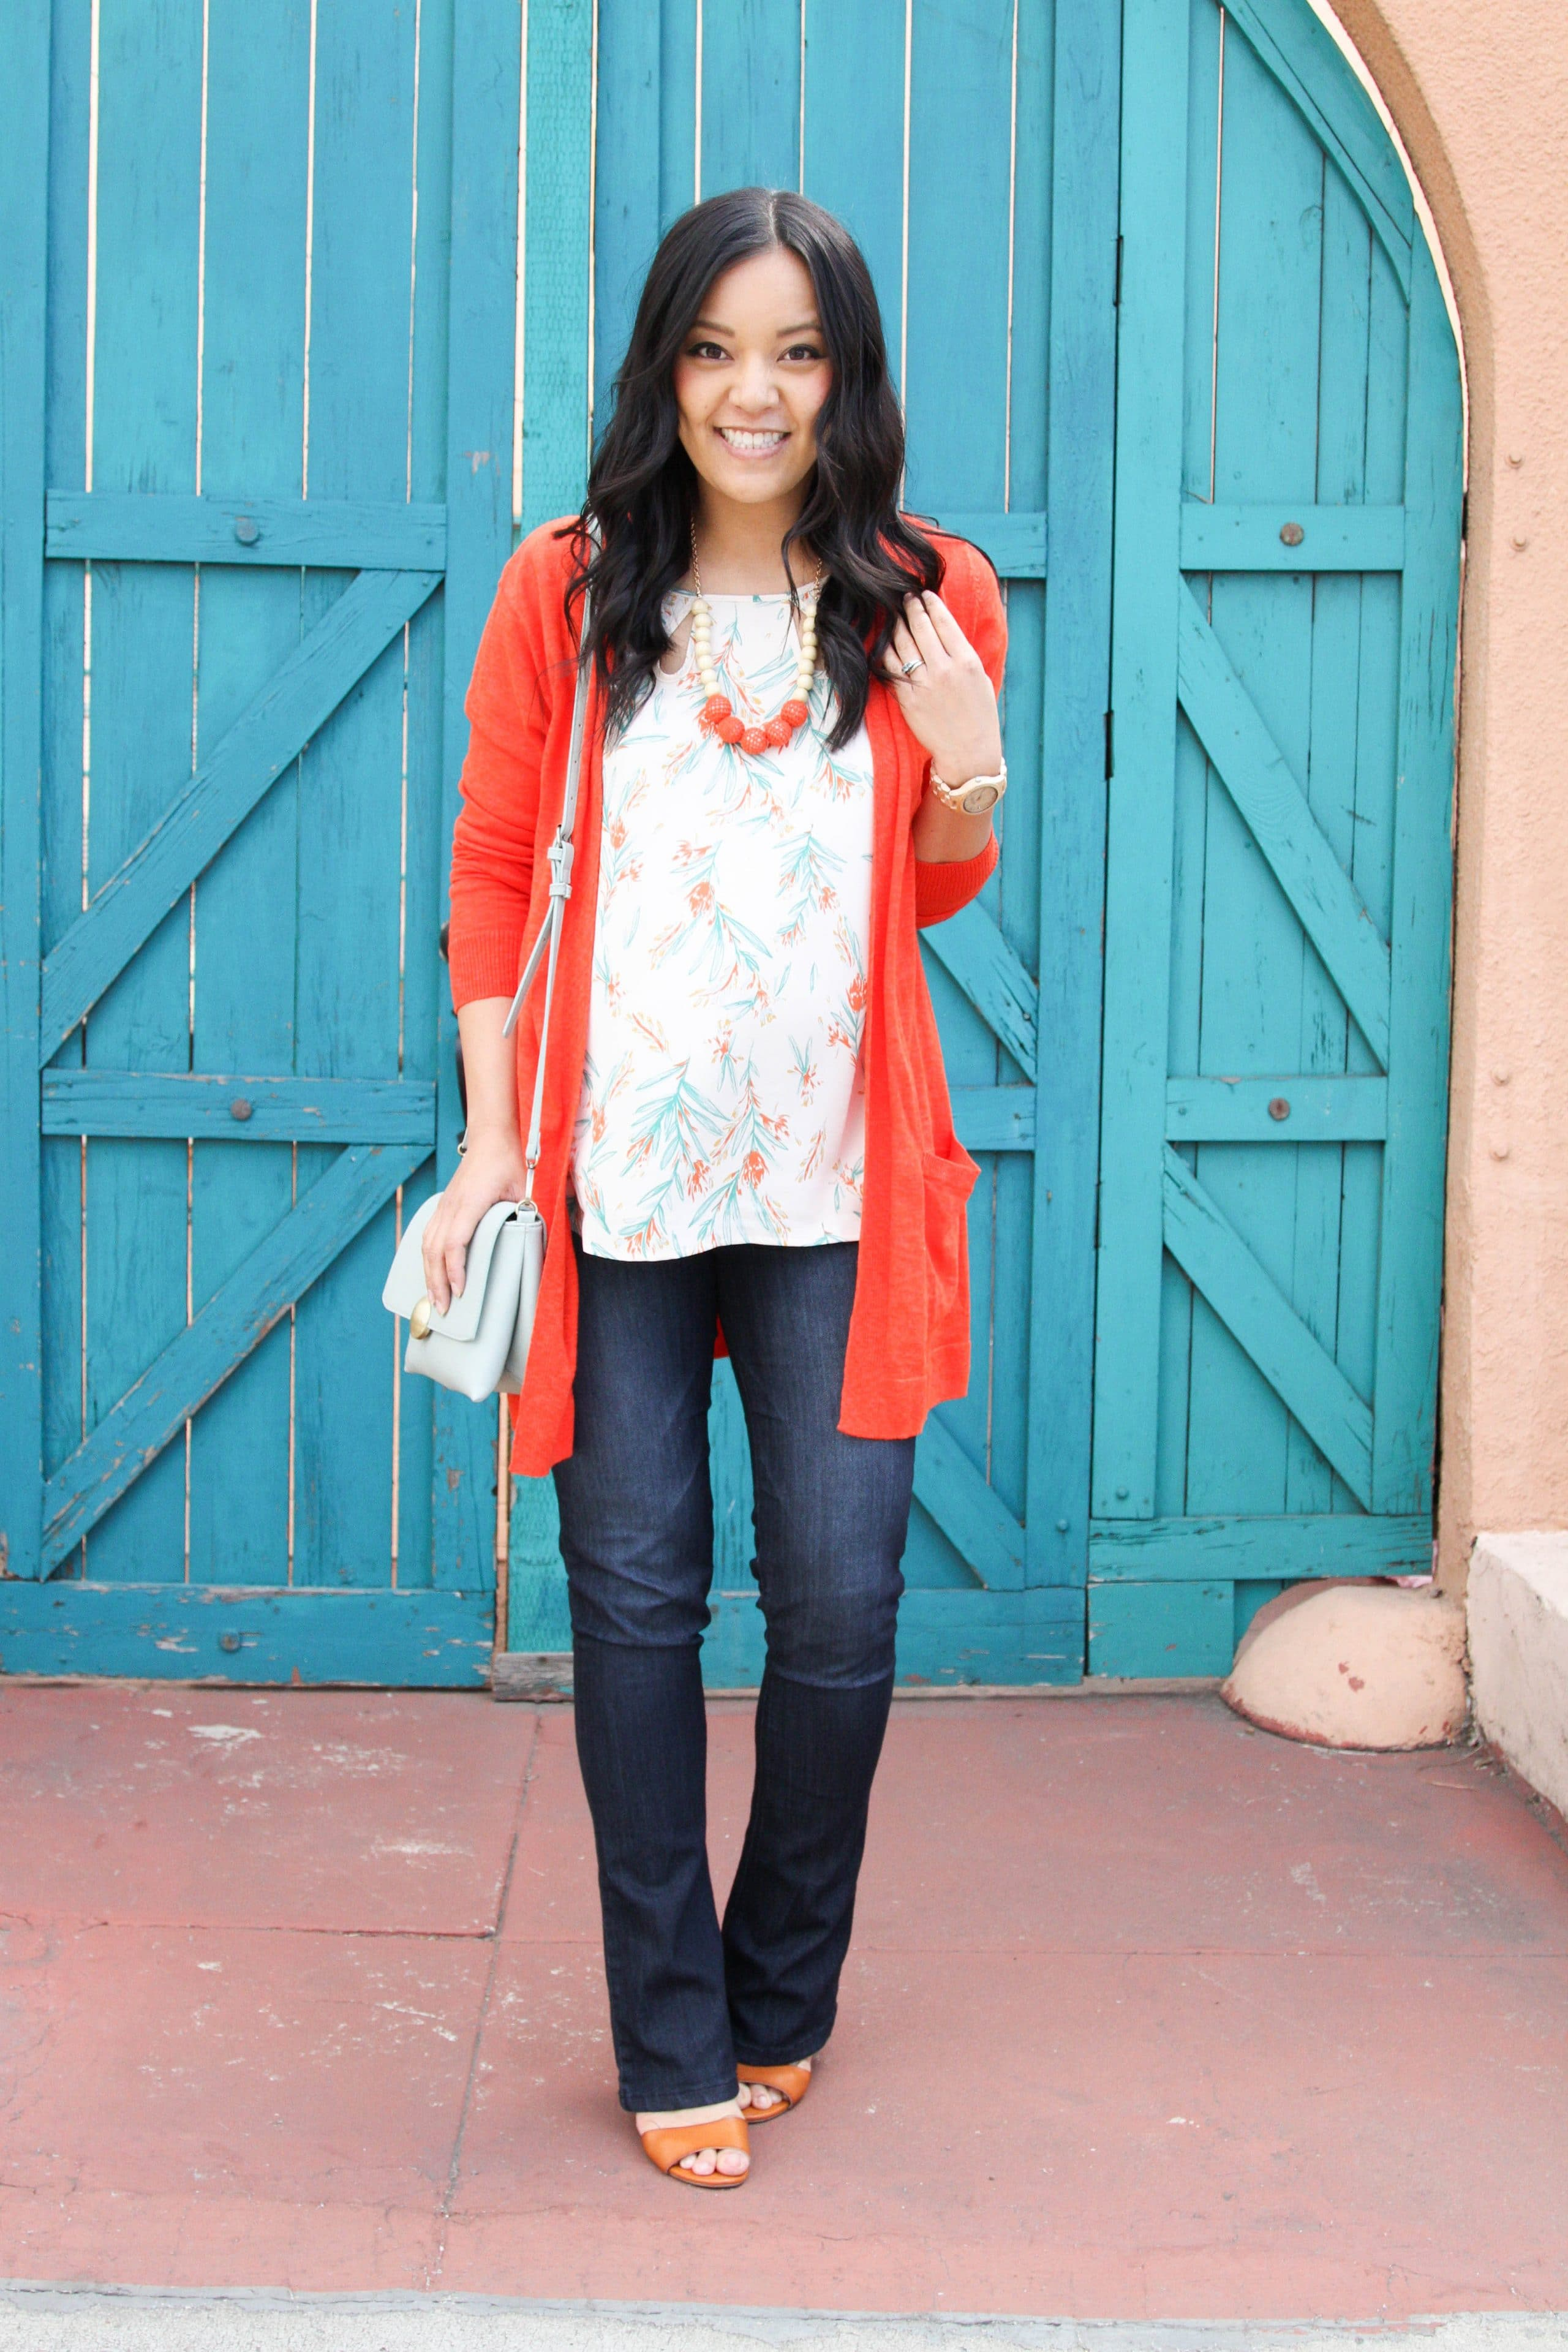 Orange Cardigan + Bootcut Jeans + Floral Top + Statement Necklace